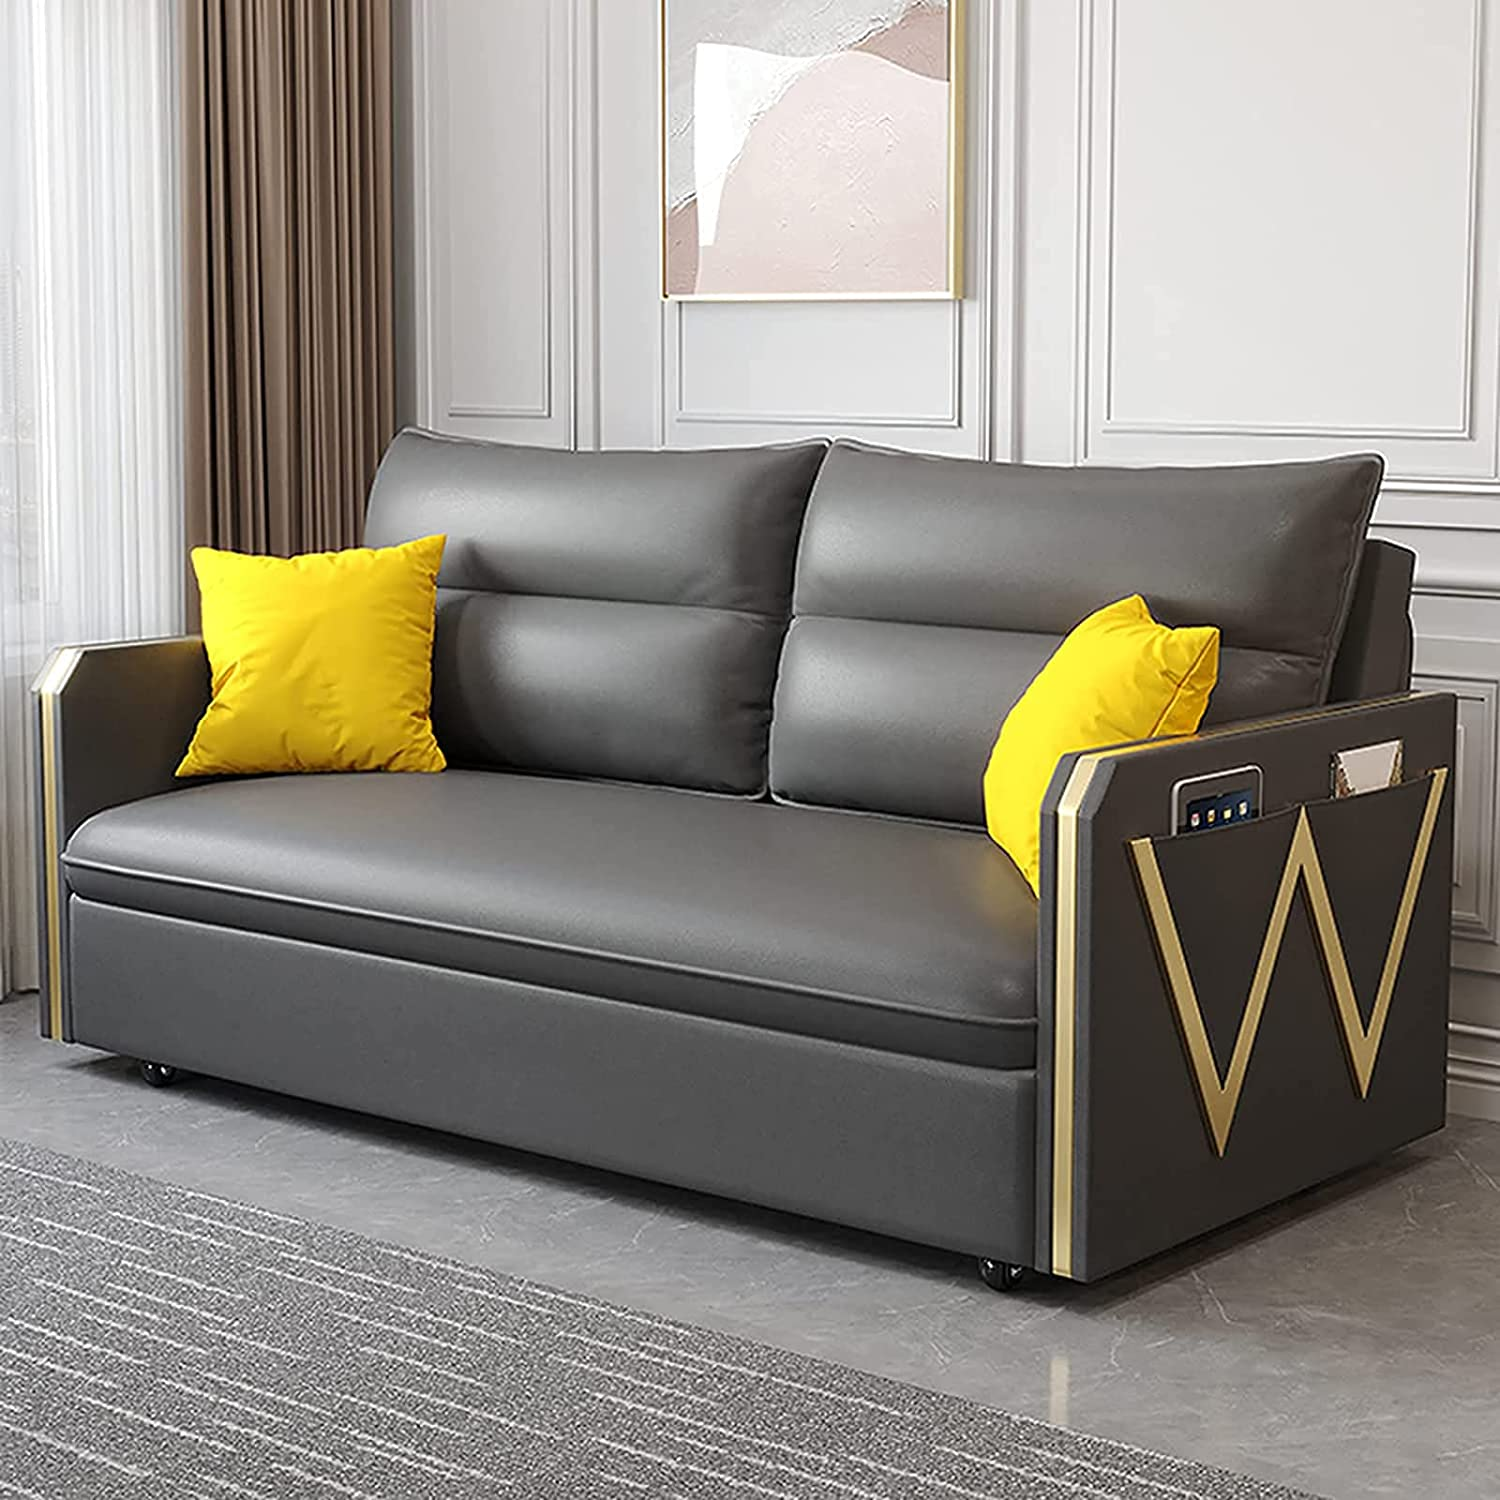 Folding Popular popular Sofa Bed Multifunctional Con Couch Double Pull-Out Los Angeles Mall